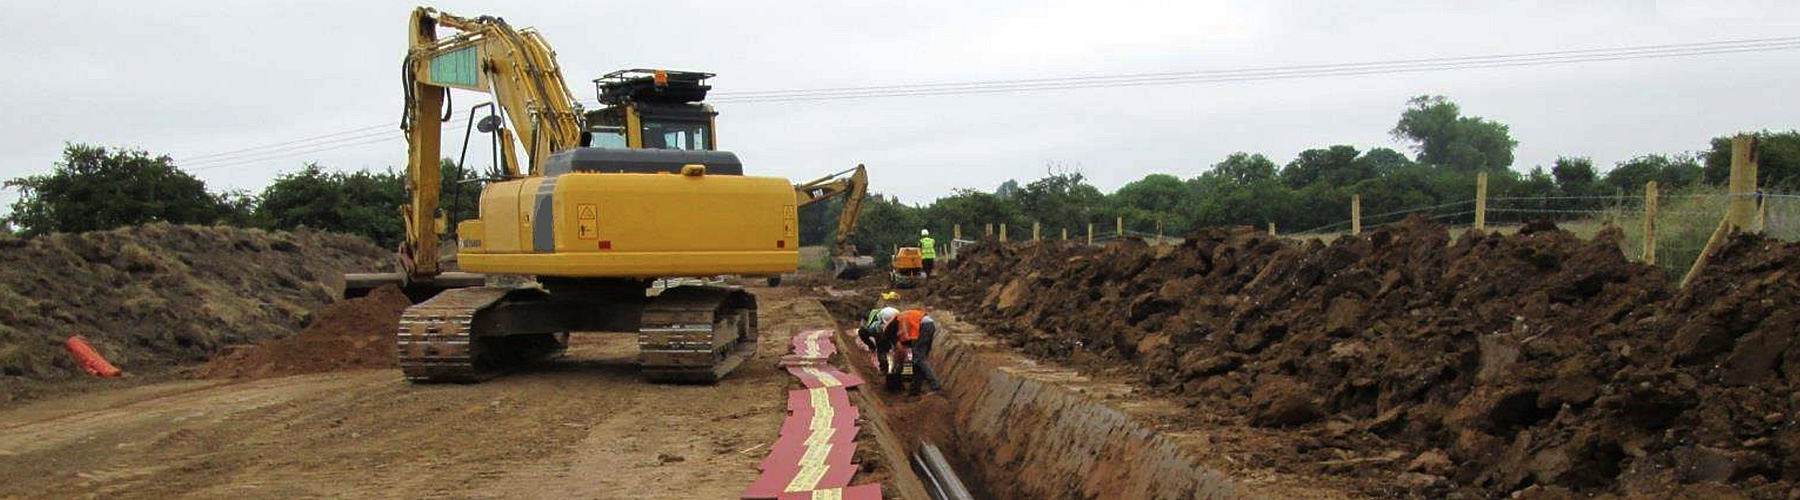 Example of wind farm cable route construction.